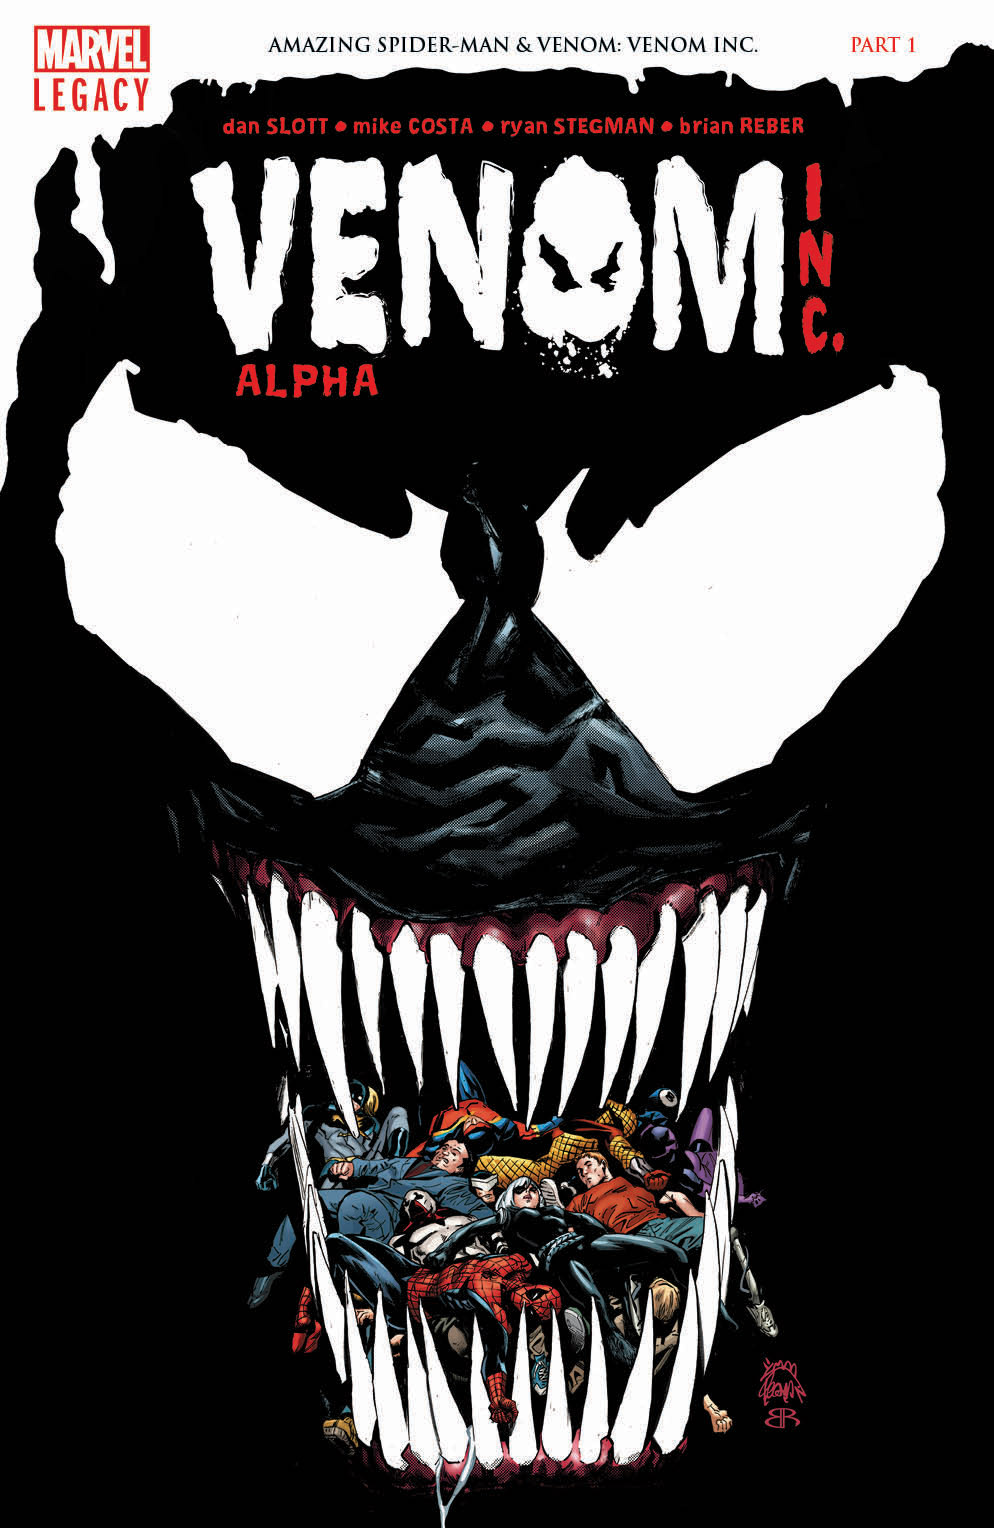 VENOM INC/ALPHA #1: VENOM INC PART 1